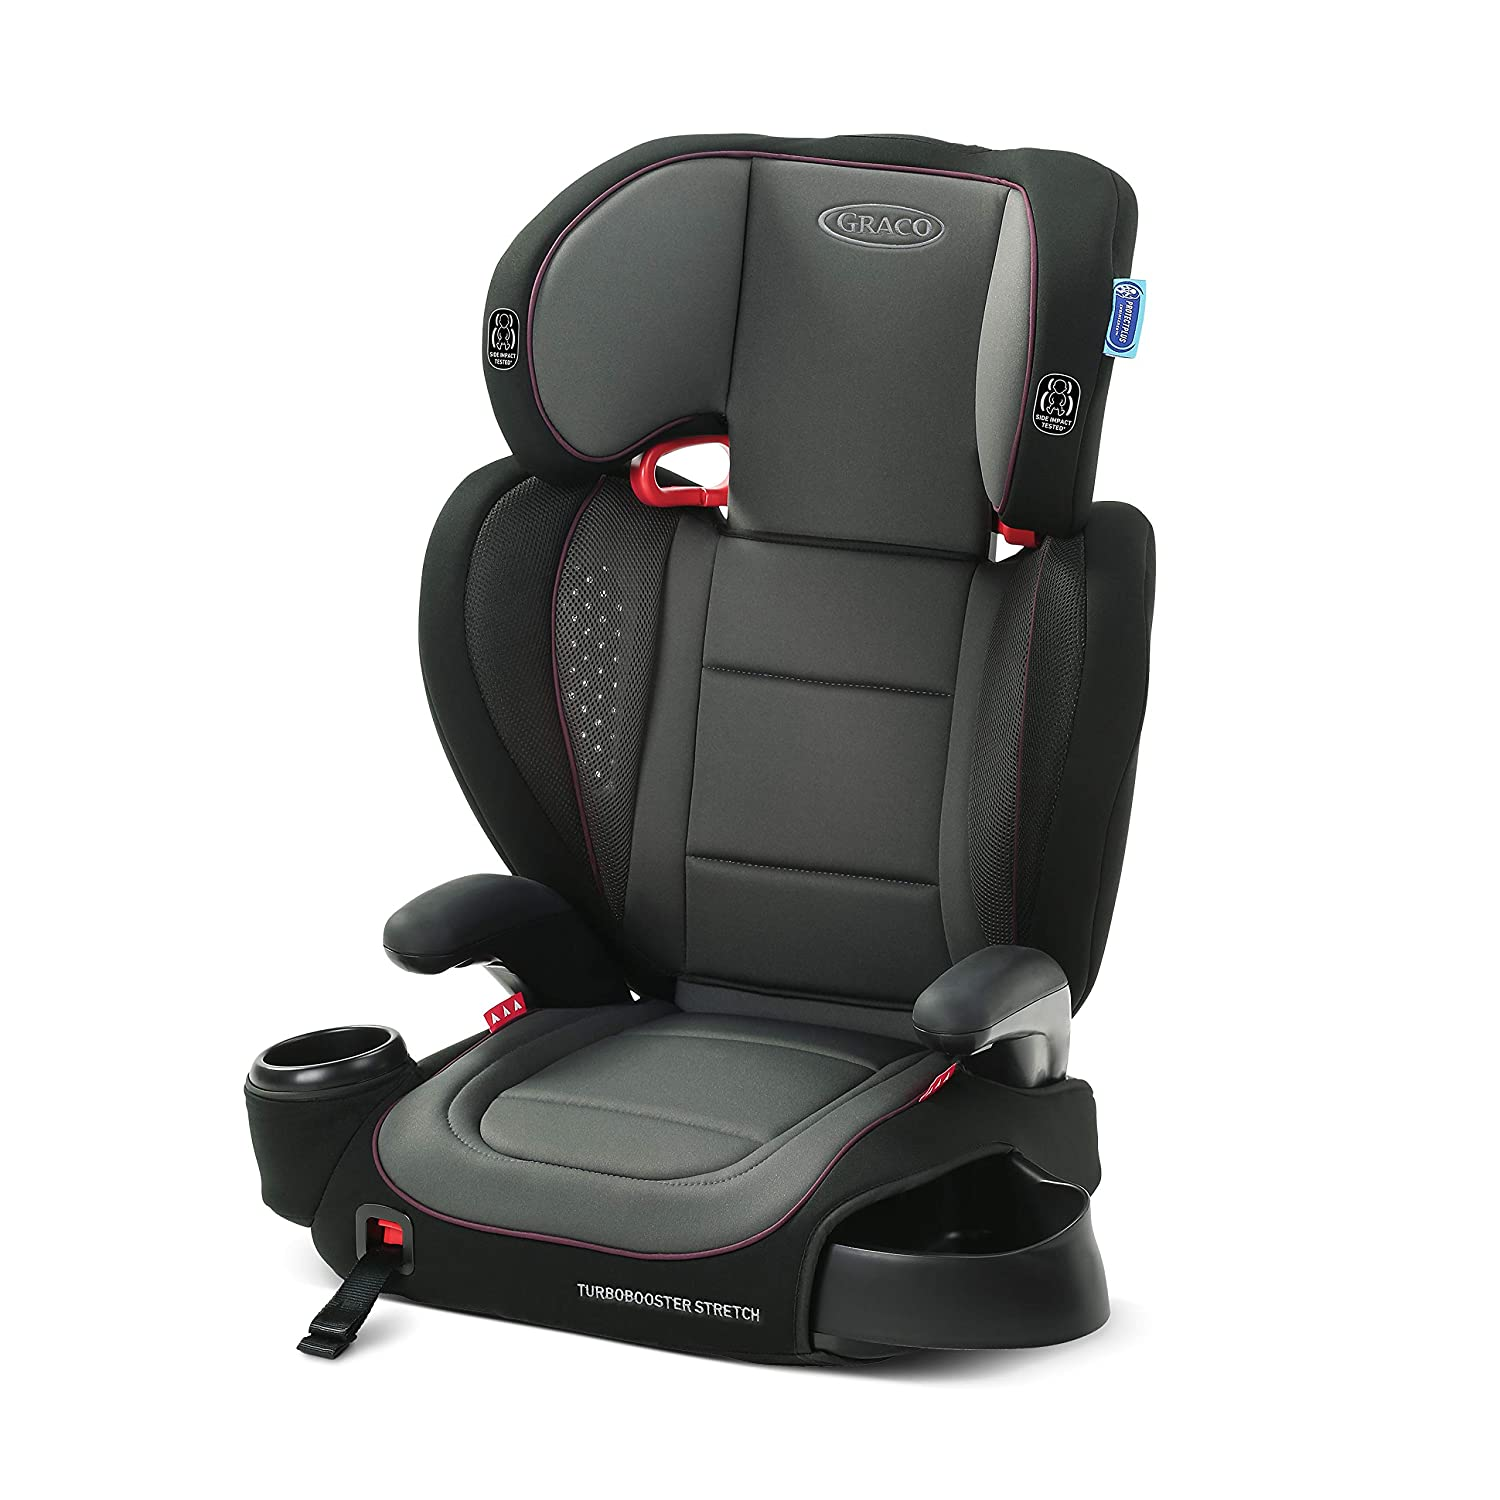 Graco TurboBooster Stretch Booster Seat, Ainsley